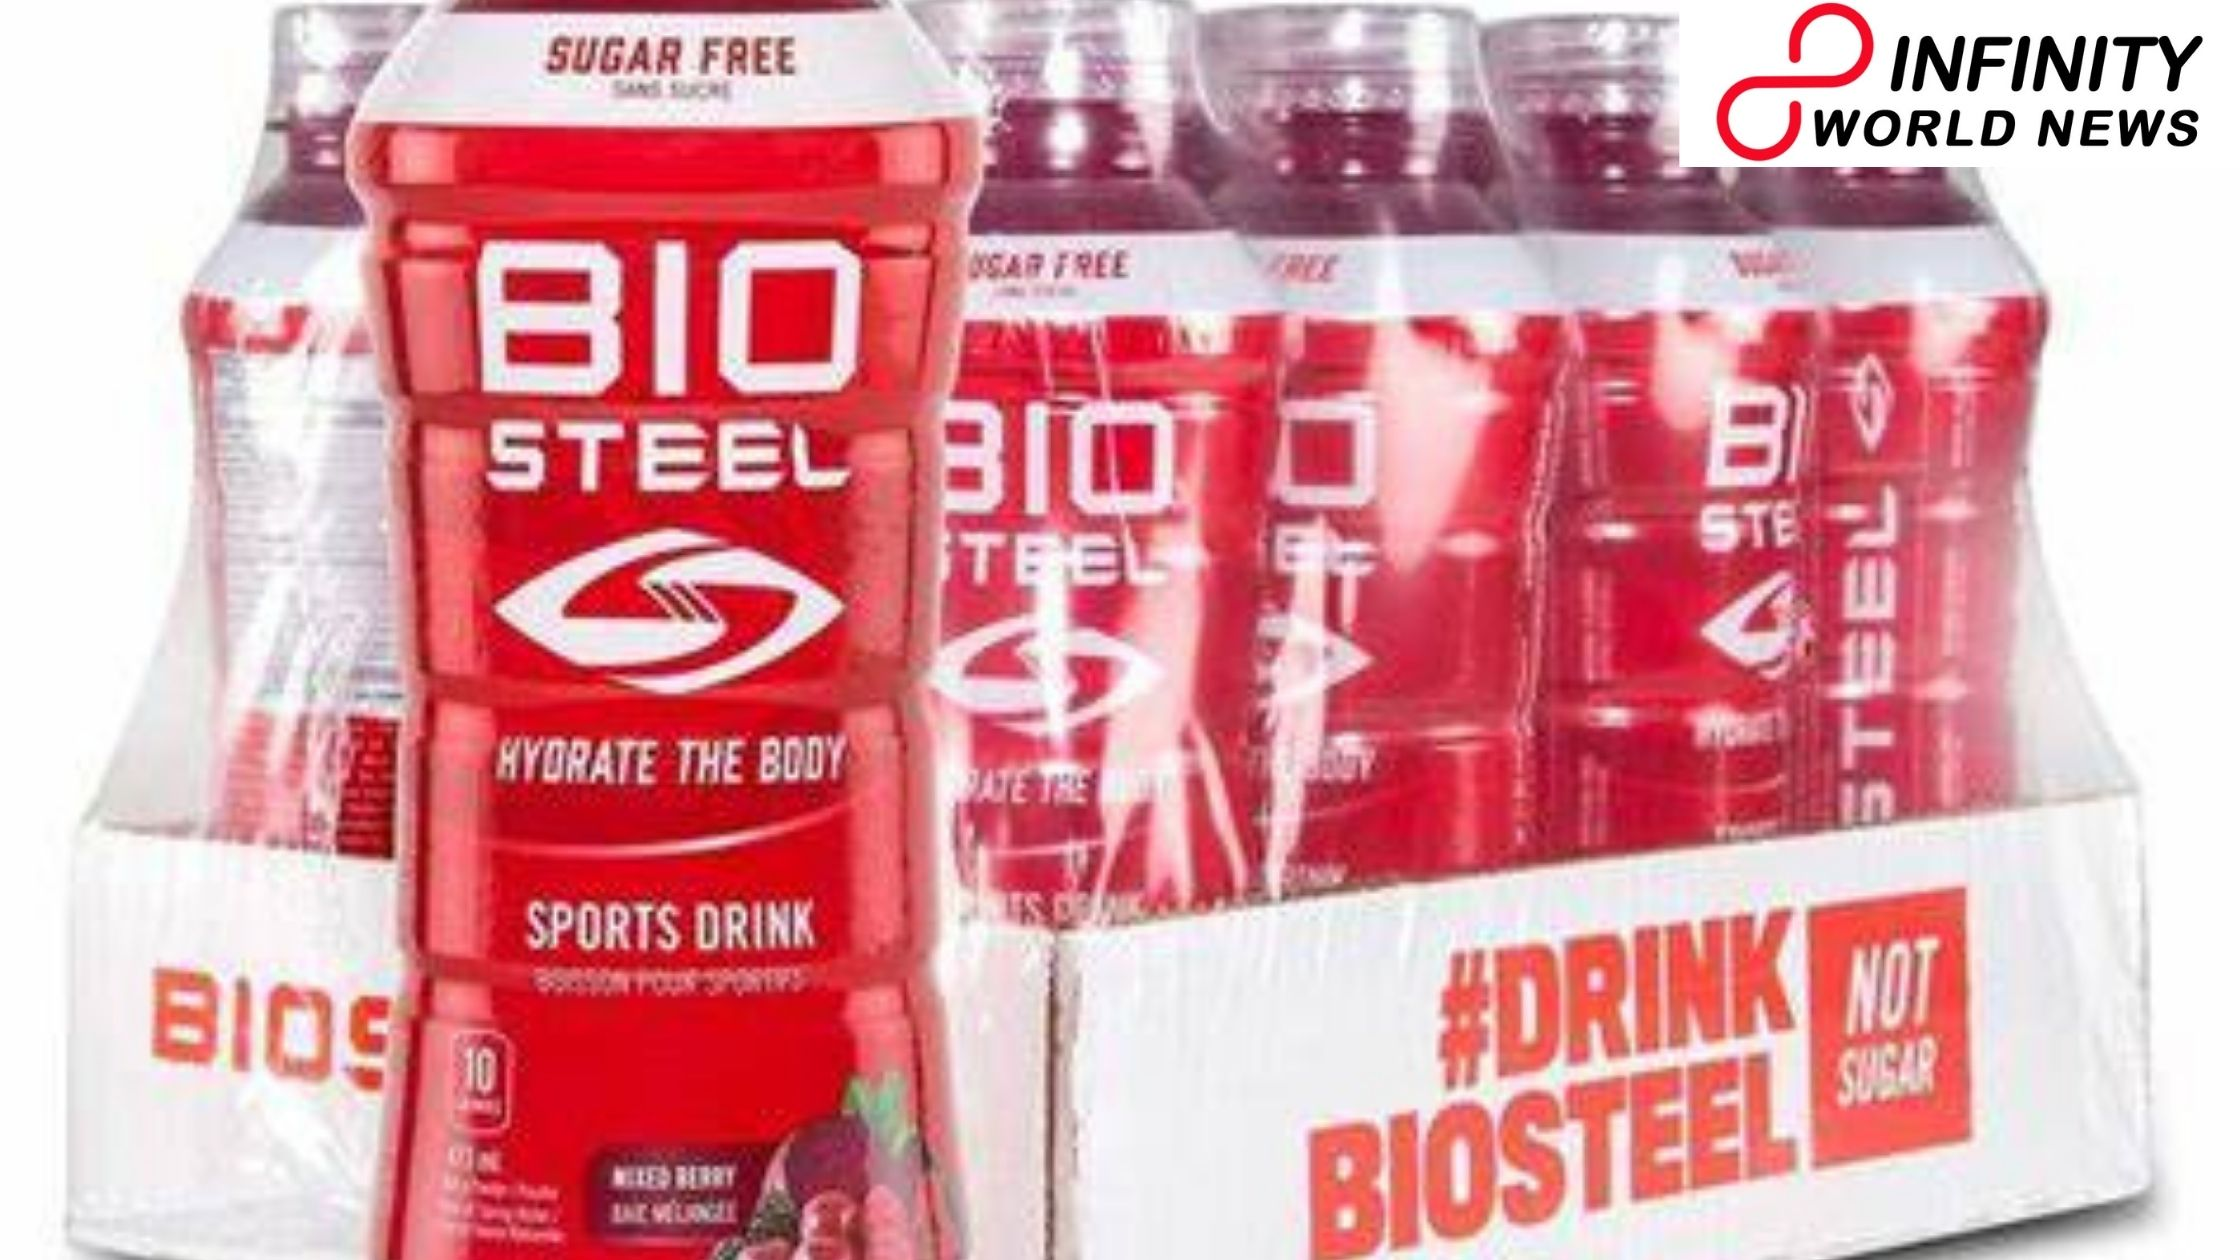 Now Official Sports Drink of The Philadelphia 76ers is BioSteel